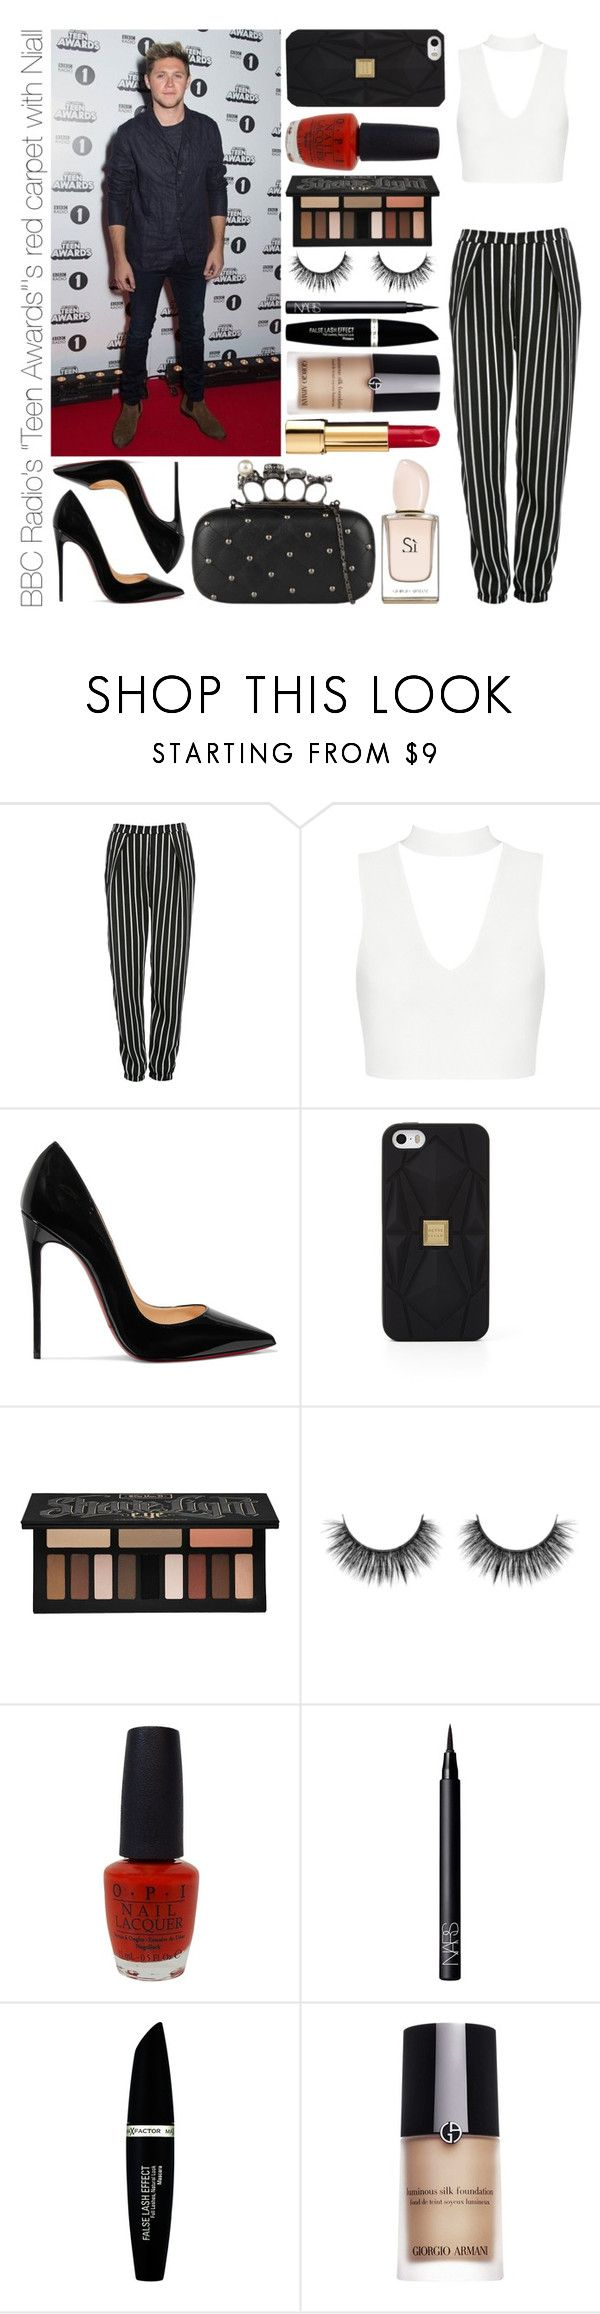 """""""BBC Radio's """"Teen Awards""""'s red carpet with Niall"""" by michaelssmile ❤ liked on Polyvore featuring Glamorous, Christian Louboutin, Hervé Léger, Kat Von D, OPI, NARS Cosmetics, Max Factor and Giorgio Armani"""